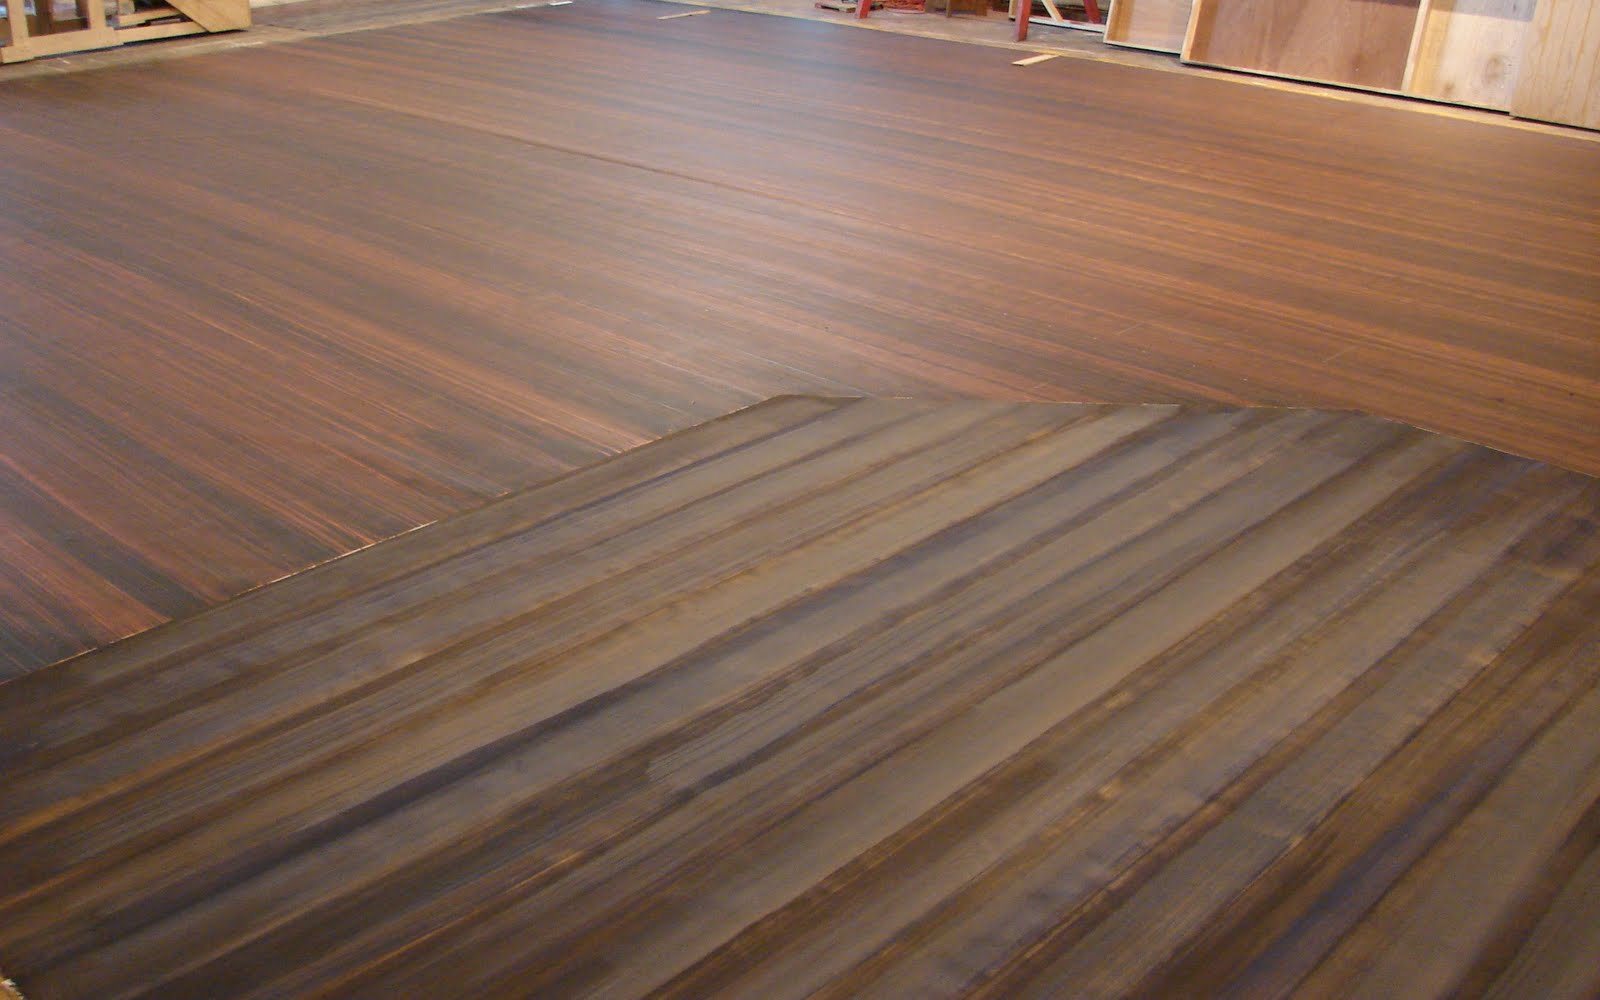 Crystal pich faux wood floor with porch inset scenic for Faux wood flooring